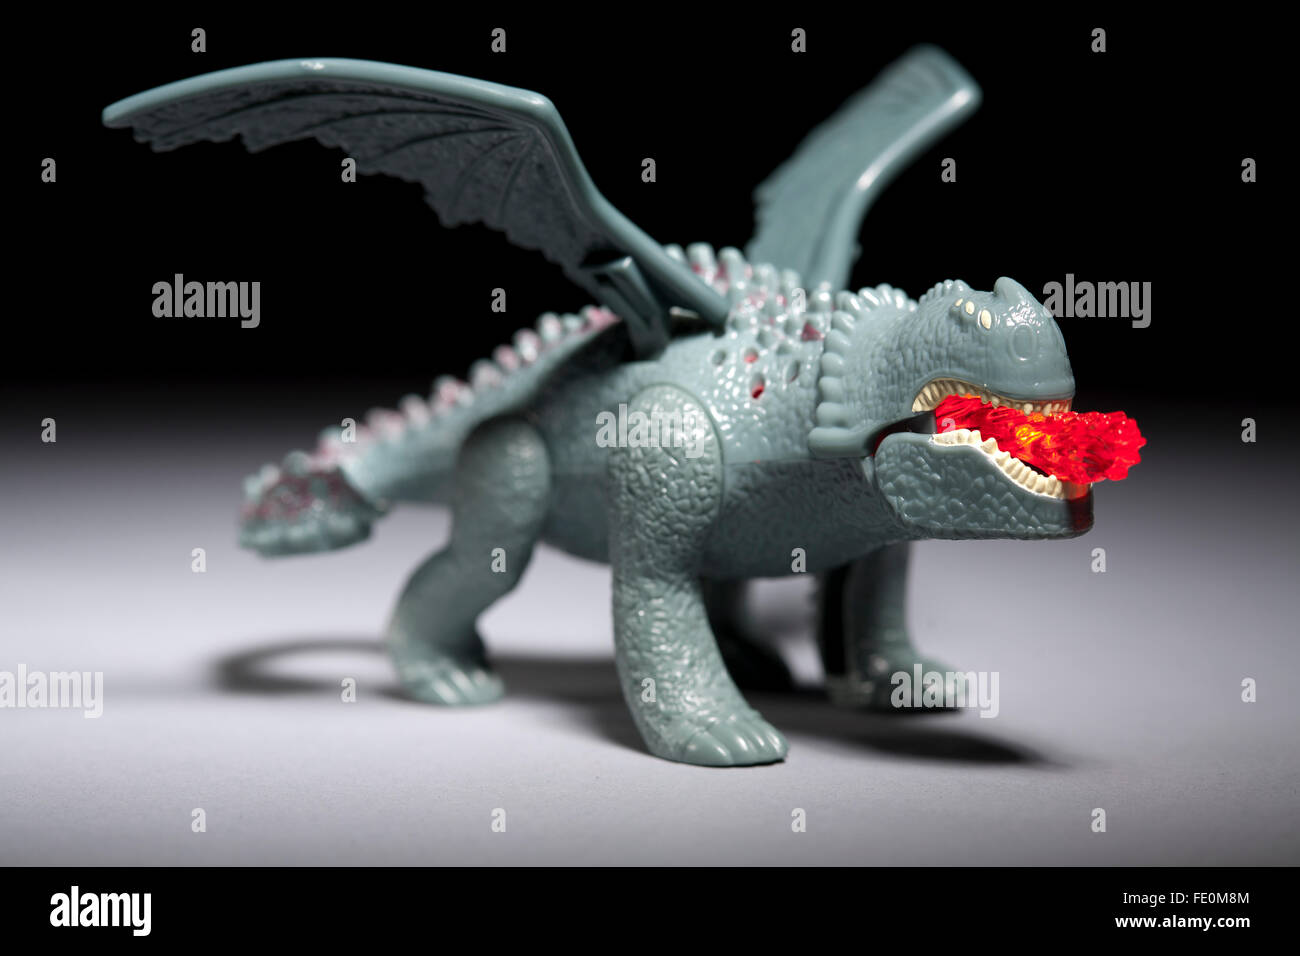 how to tame your Dragon happy meal toy R.D. - Stock Image